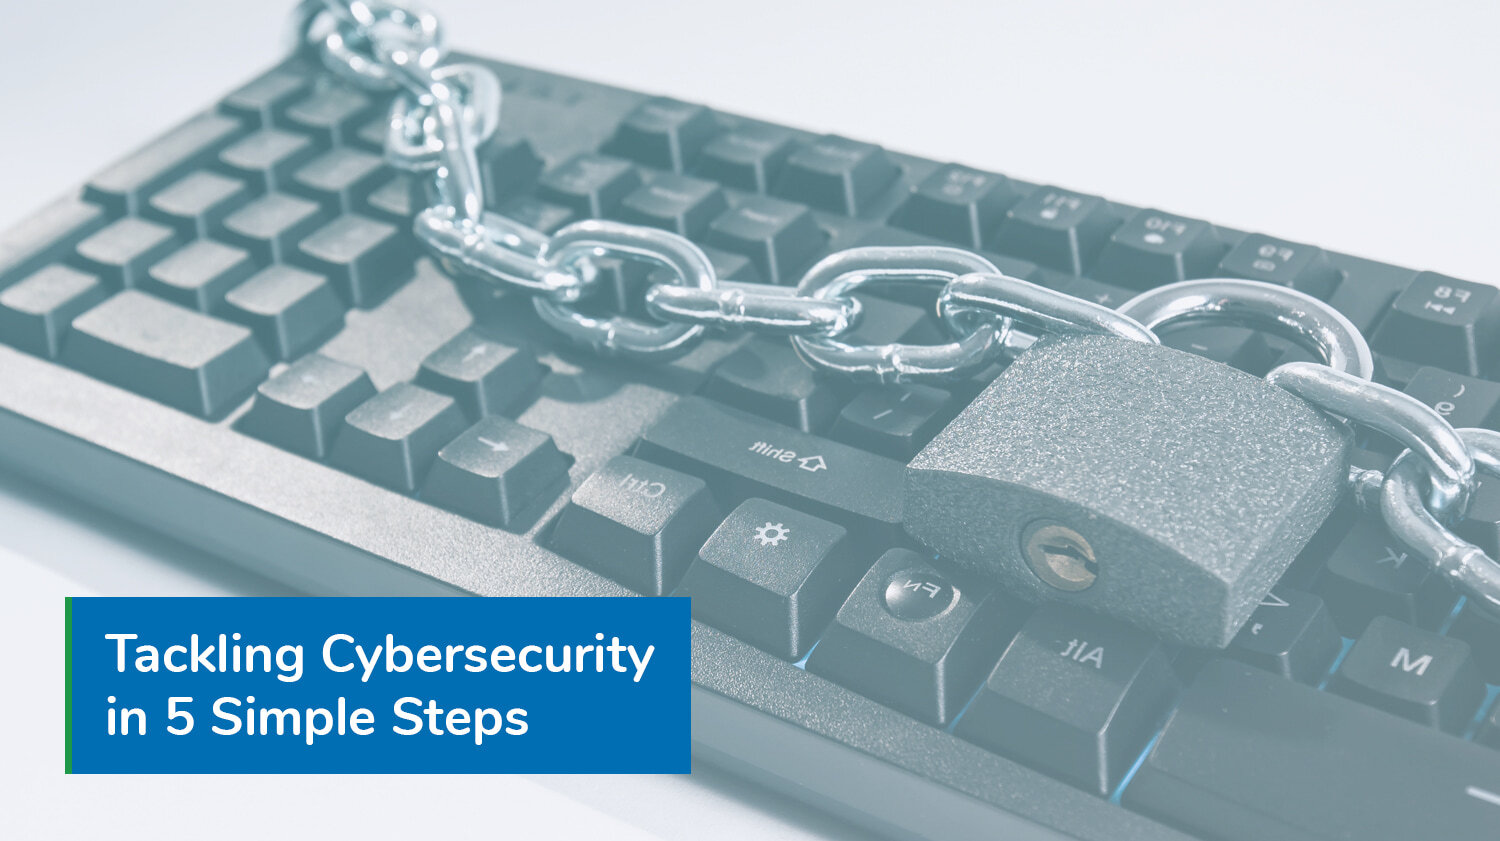 Tackle cybersecurity